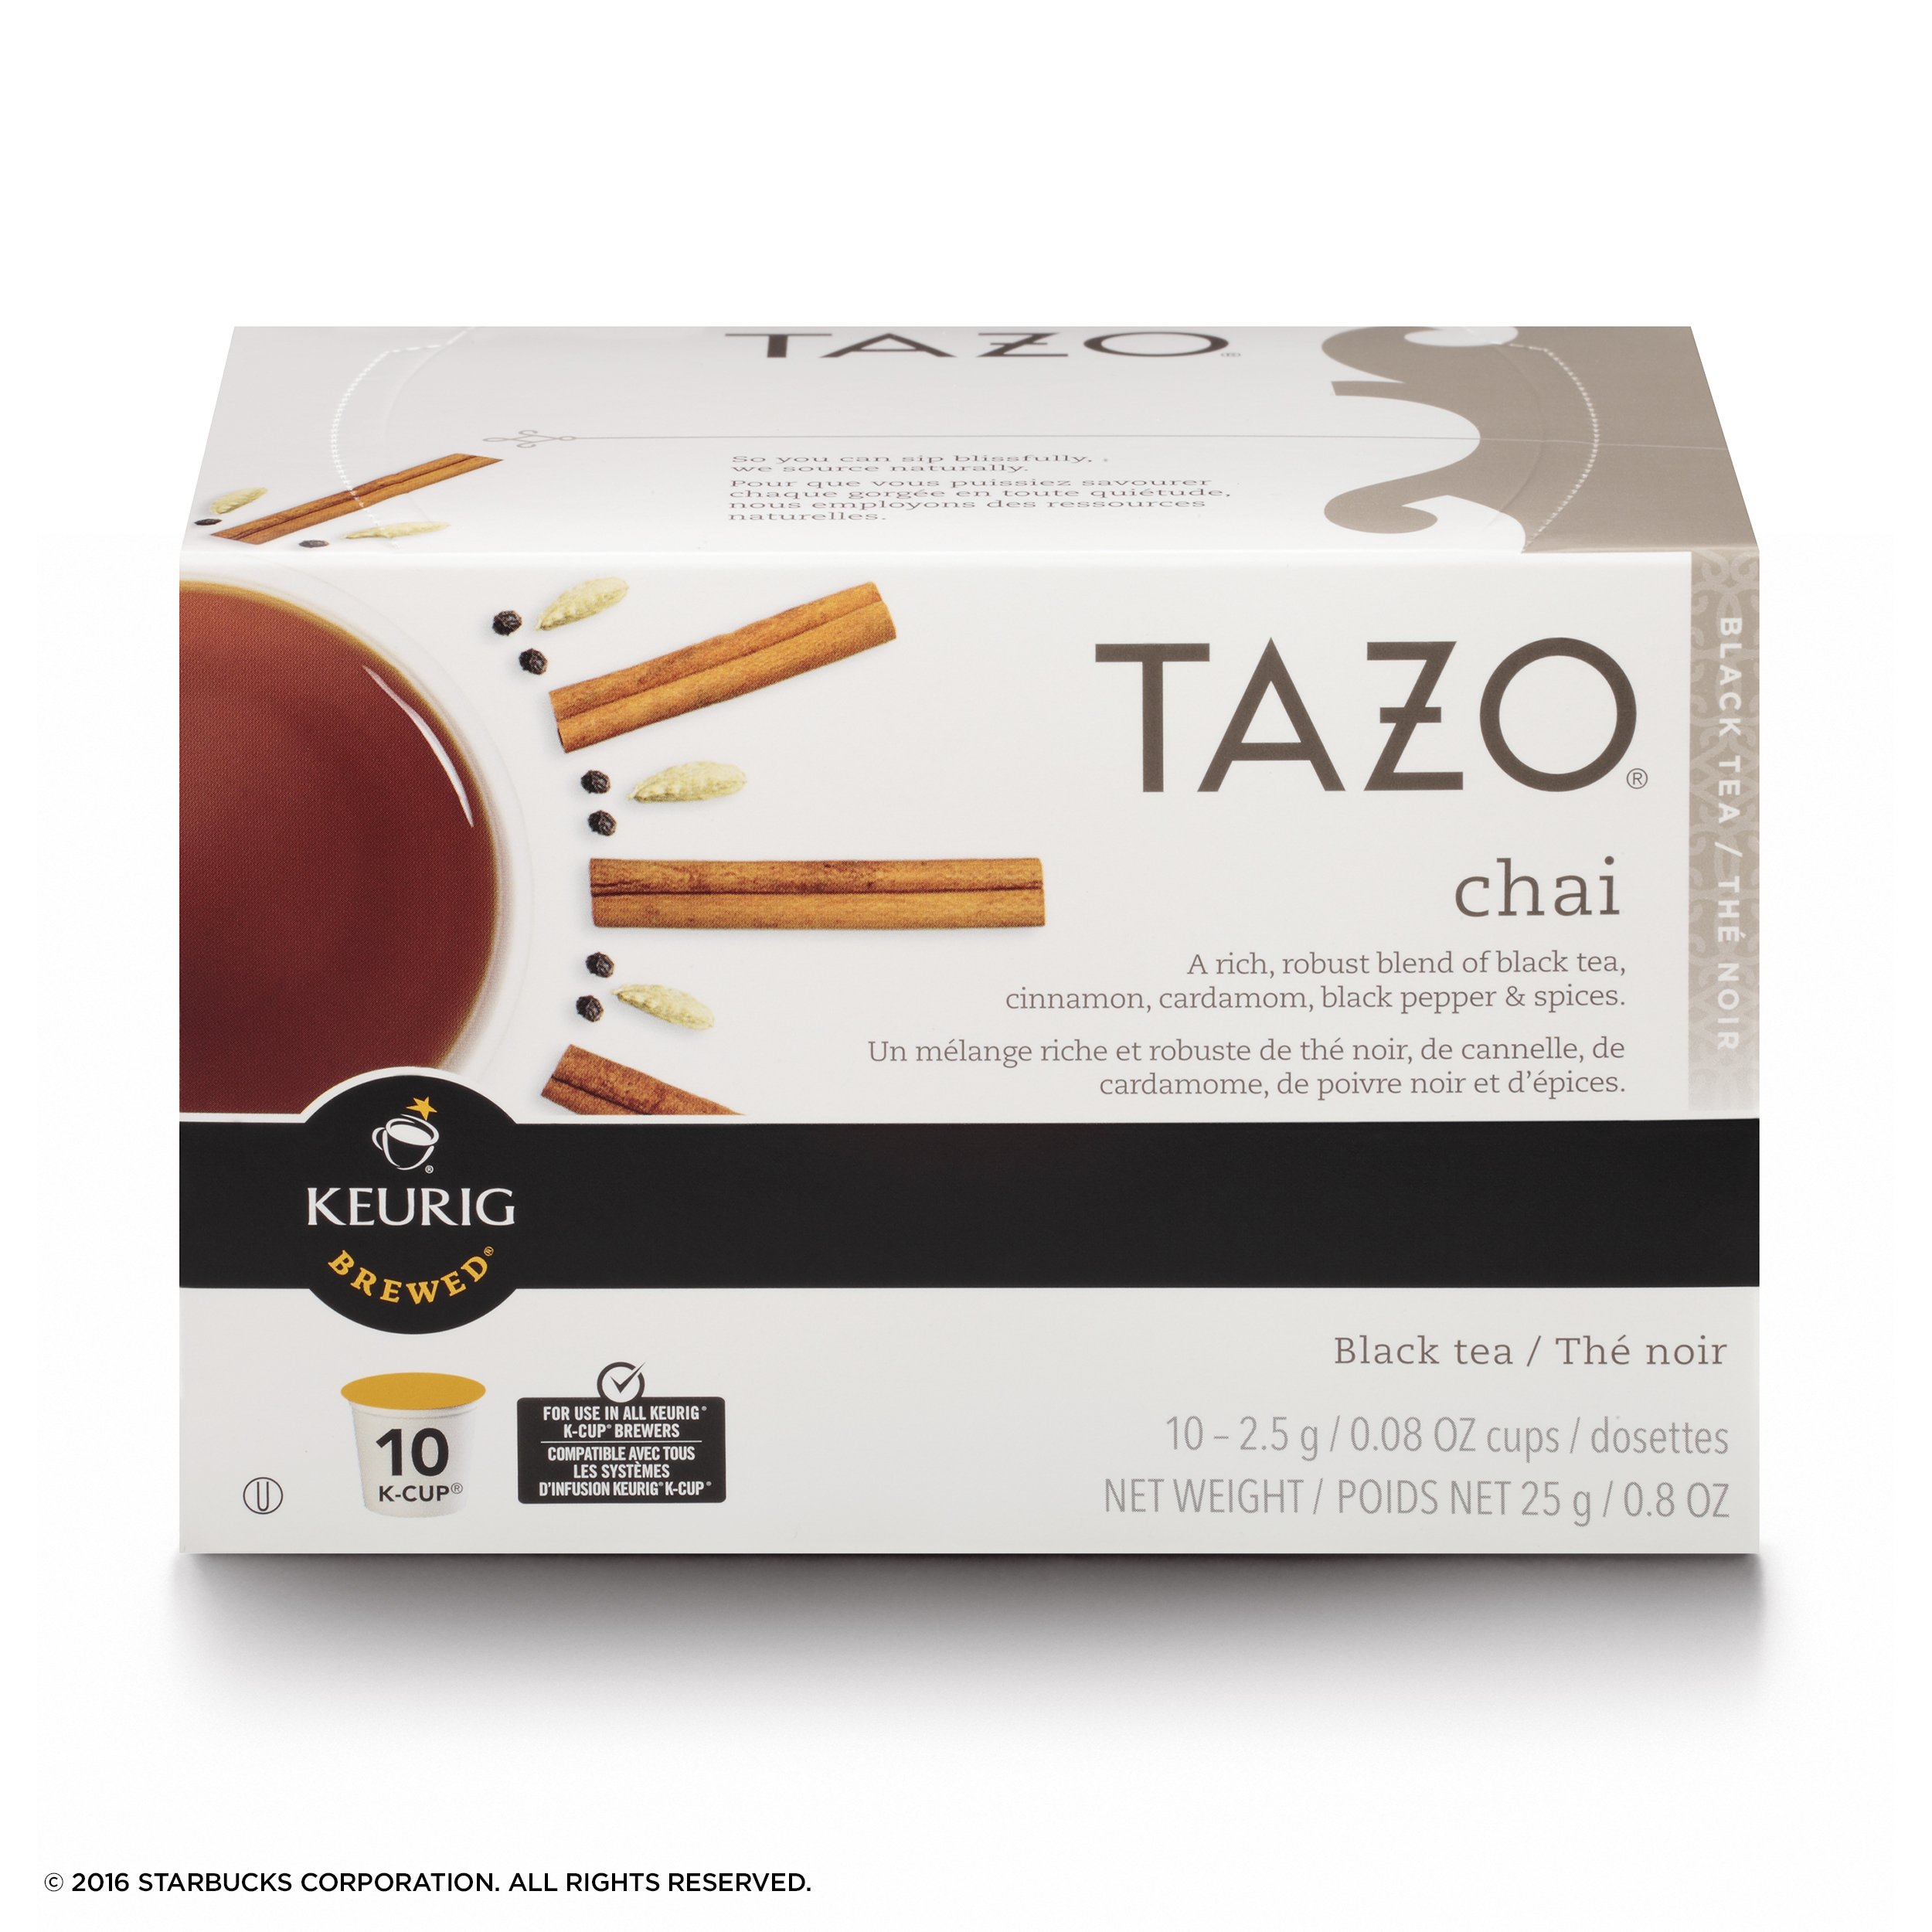 Tazo Chai Black Tea K-Cup, 10 ct (Pack of 6) by TAZO (Image #2)